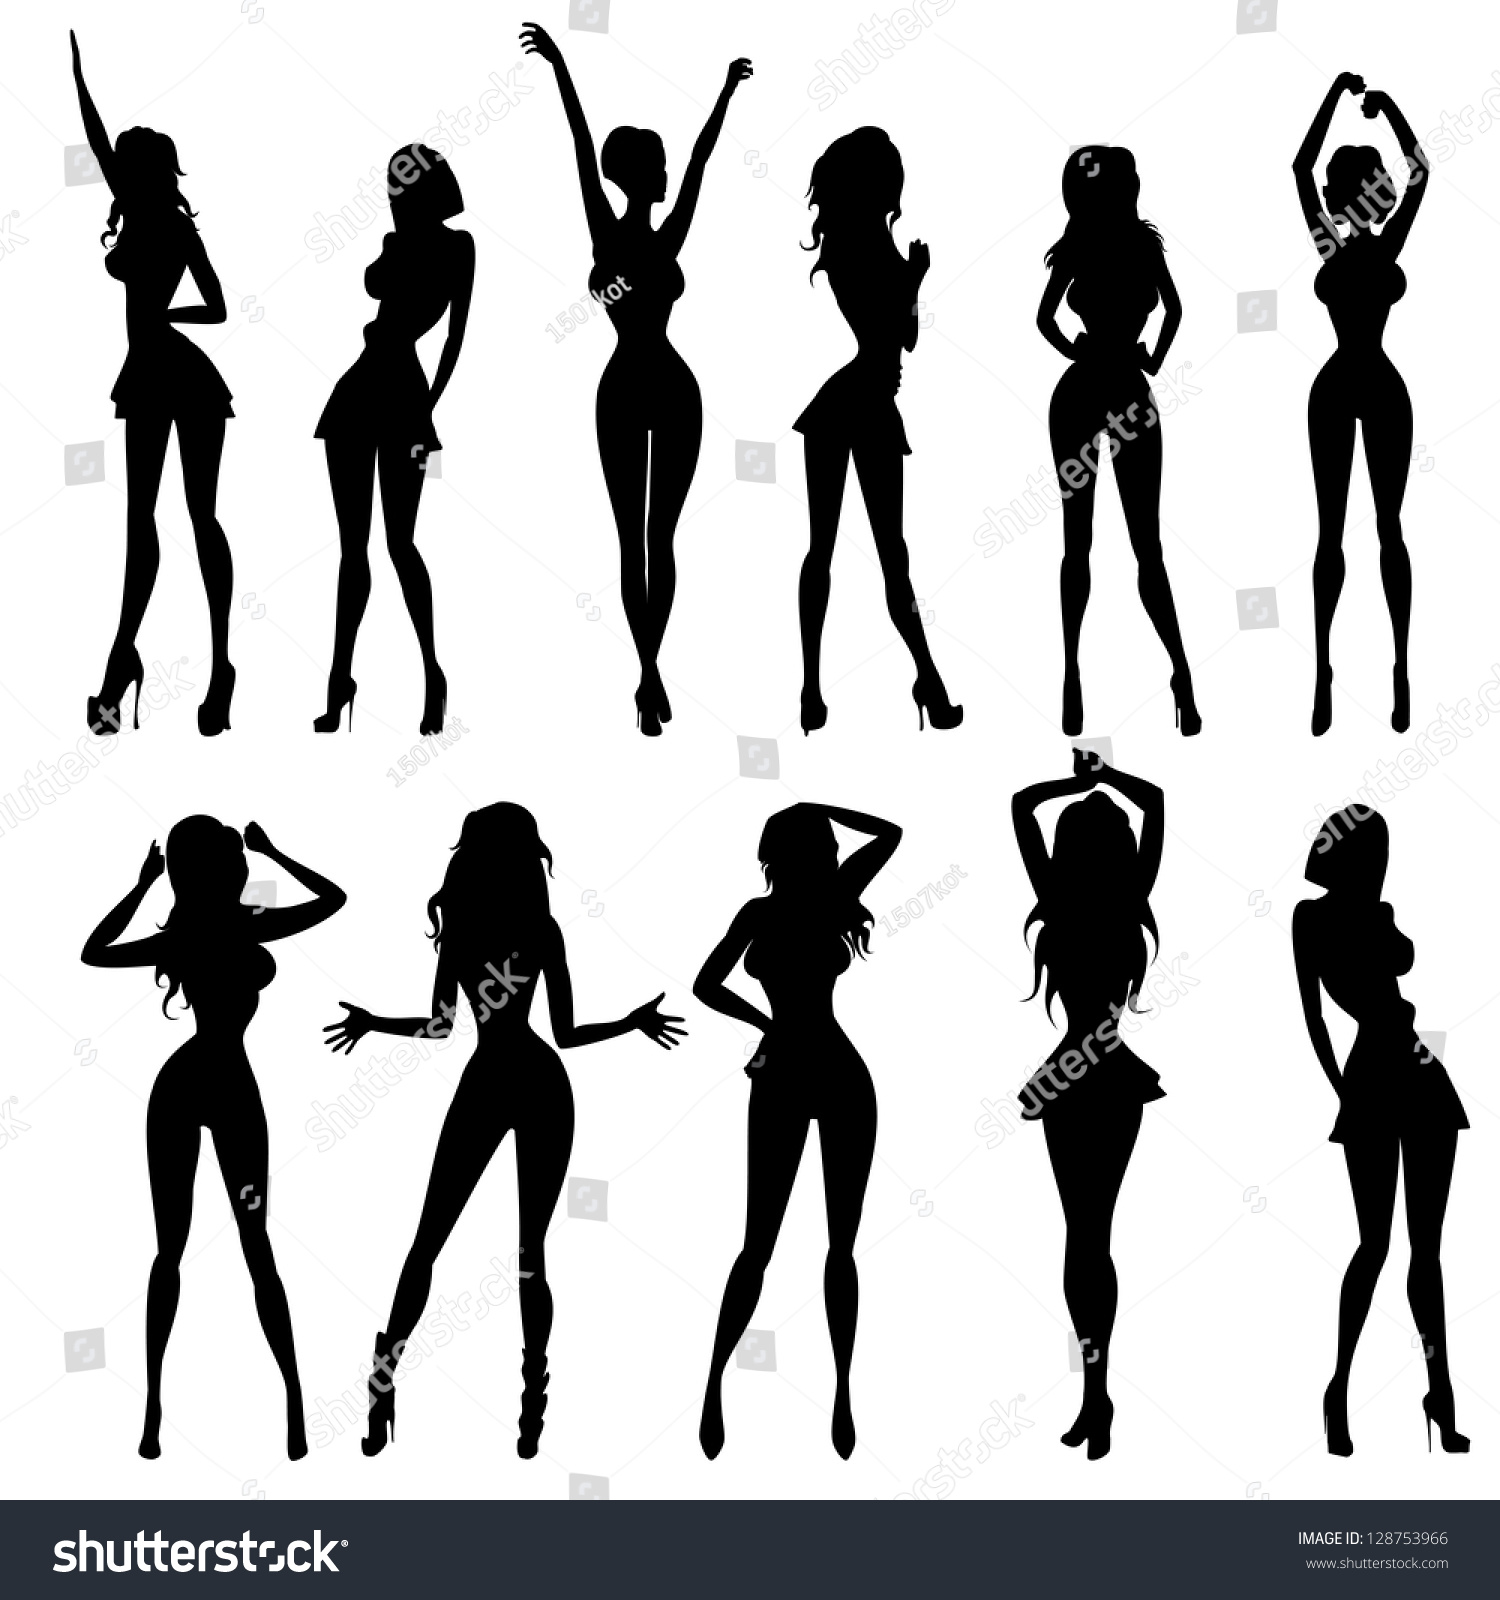 Anime models in different poses vector illustration